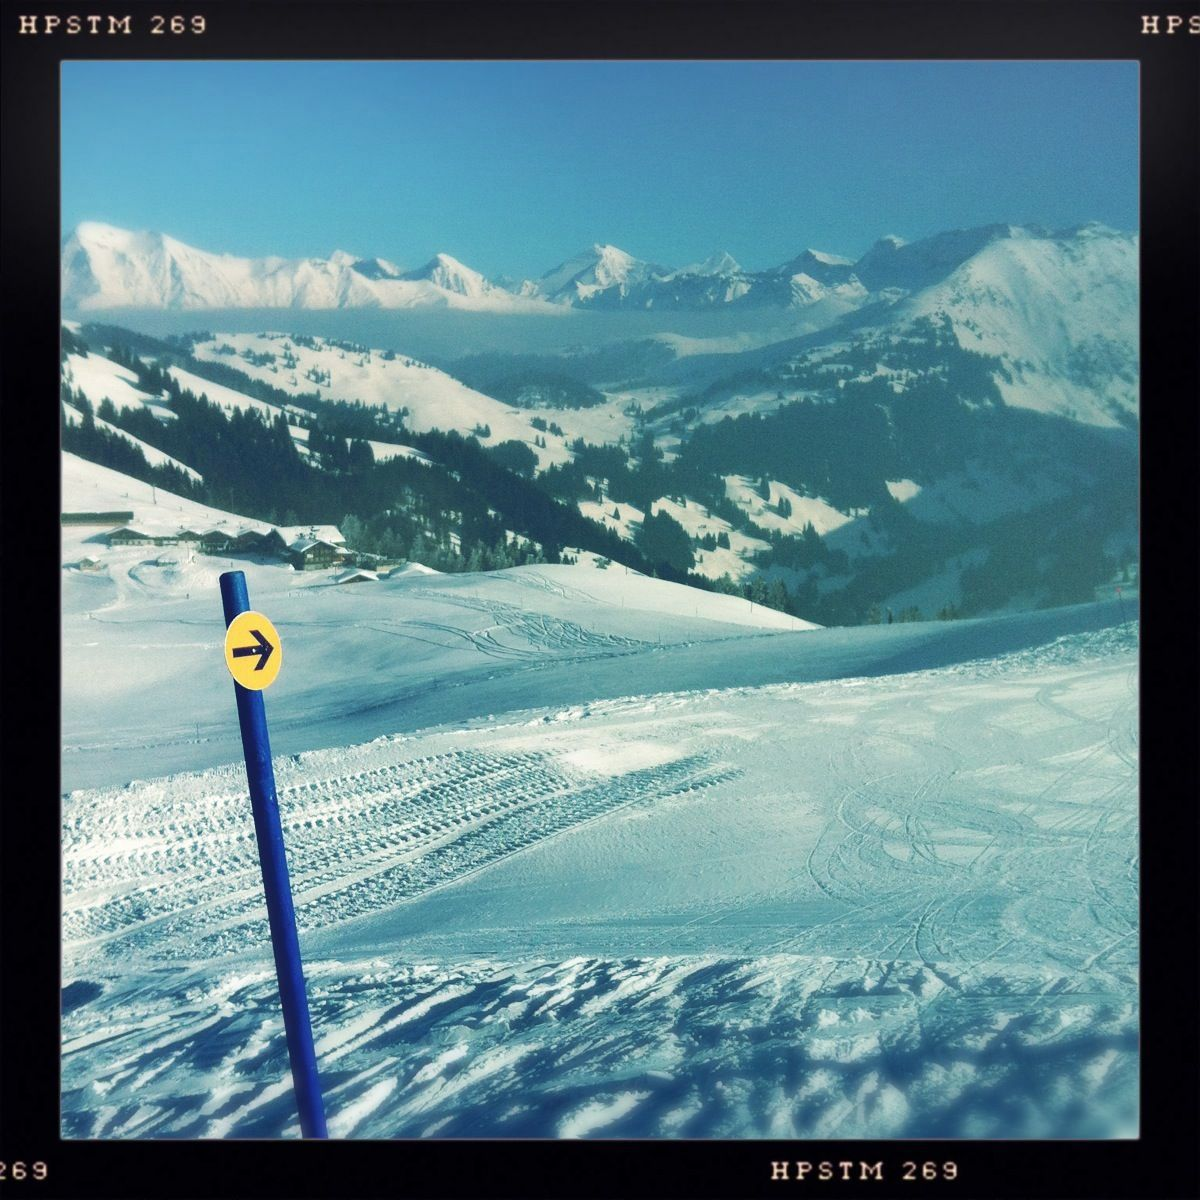 Wintersport in Gastaad08